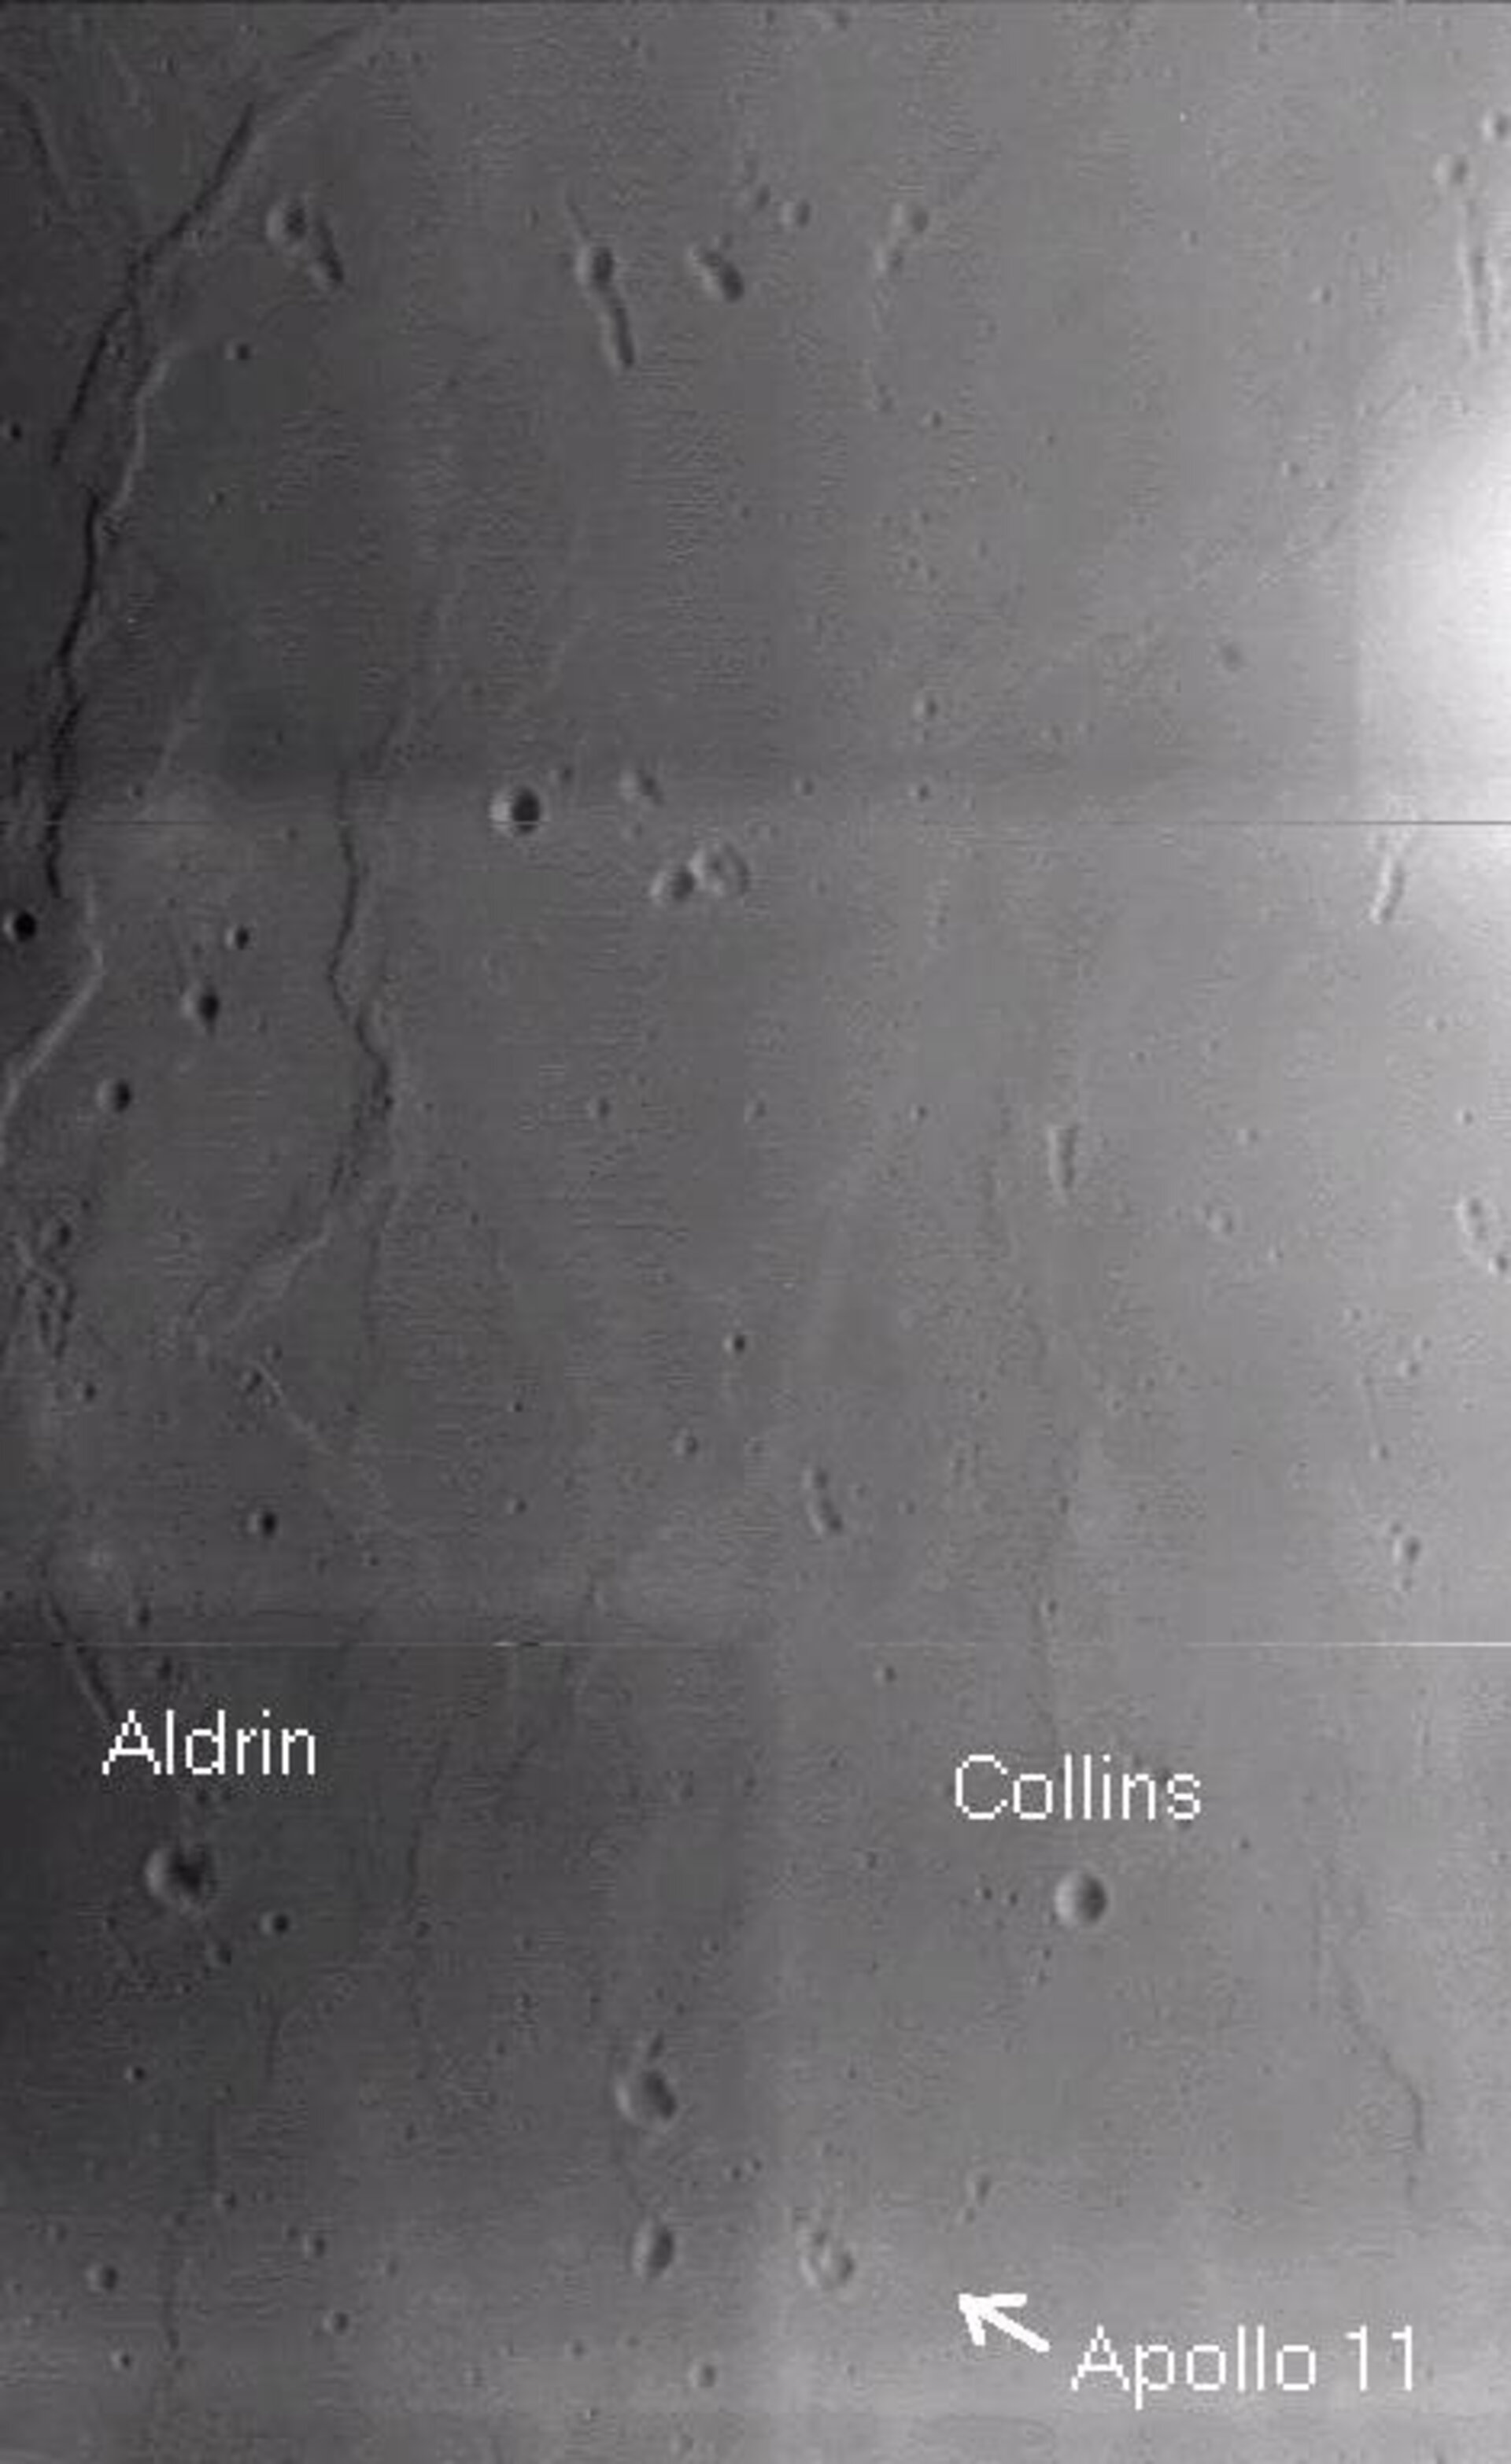 SMART-1 postcard of Apollo 11 landing site